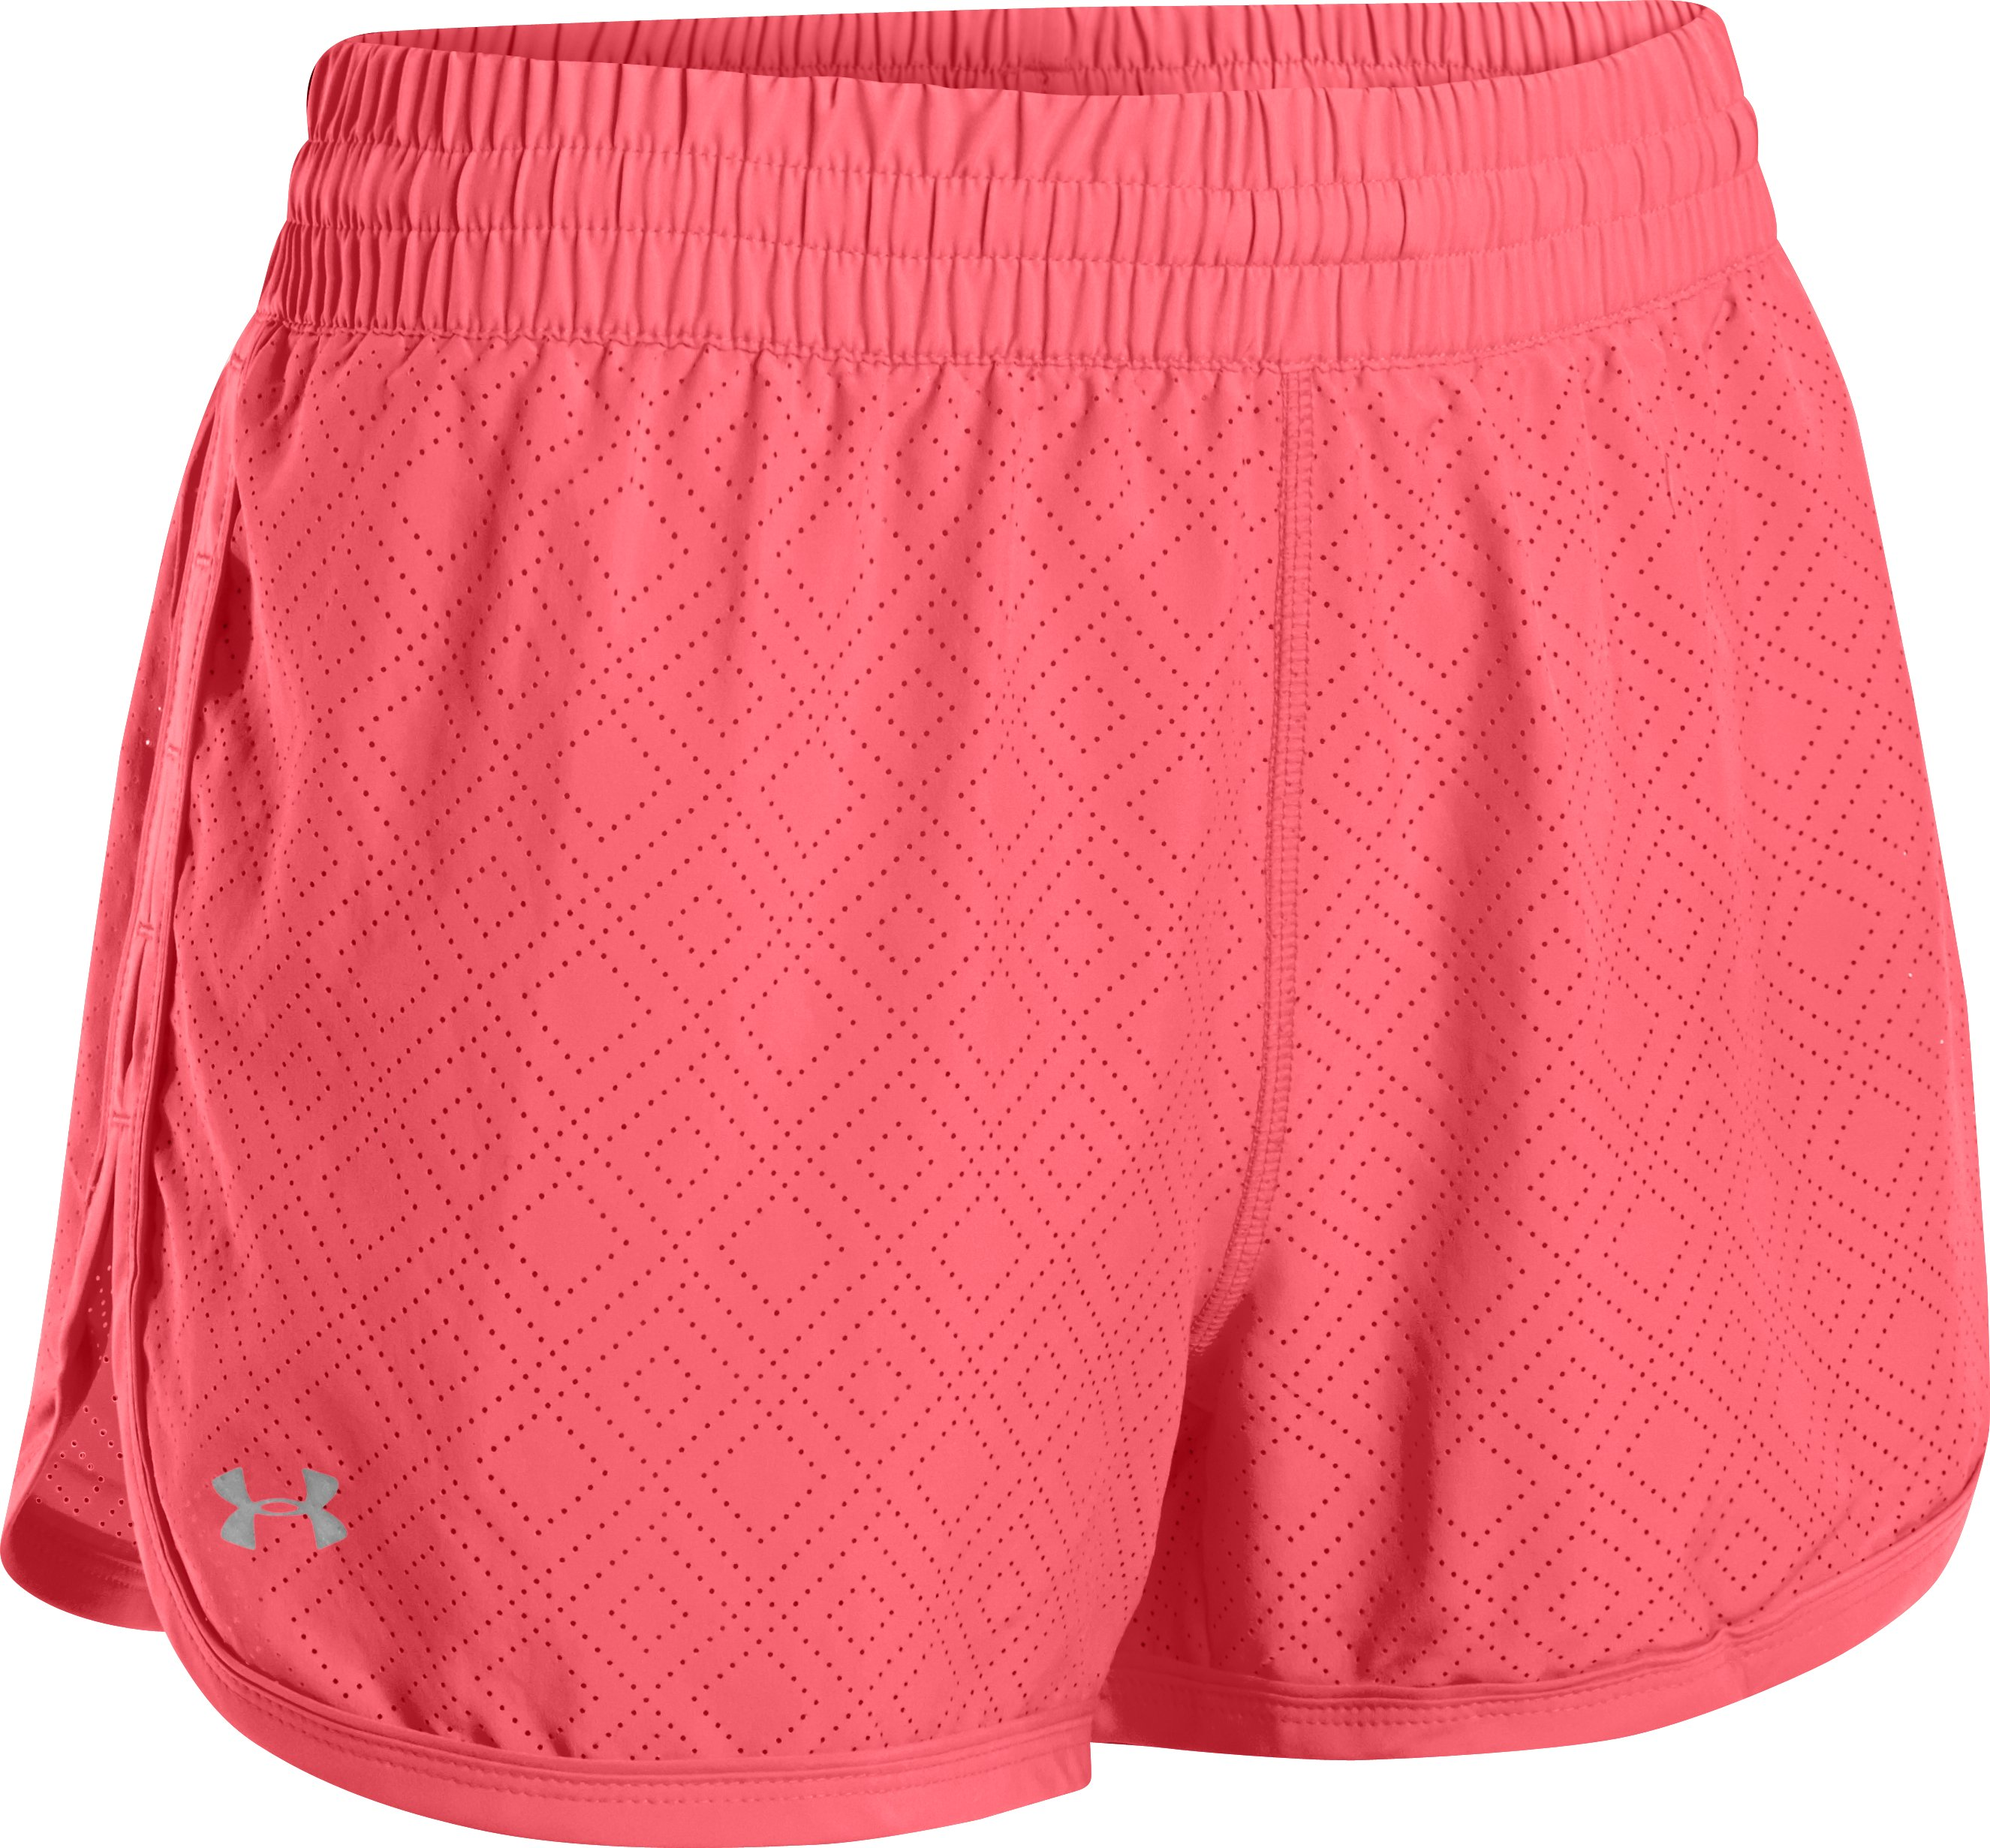 Women's Perforated UA Great Escape Shorts II, BRILLIANCE